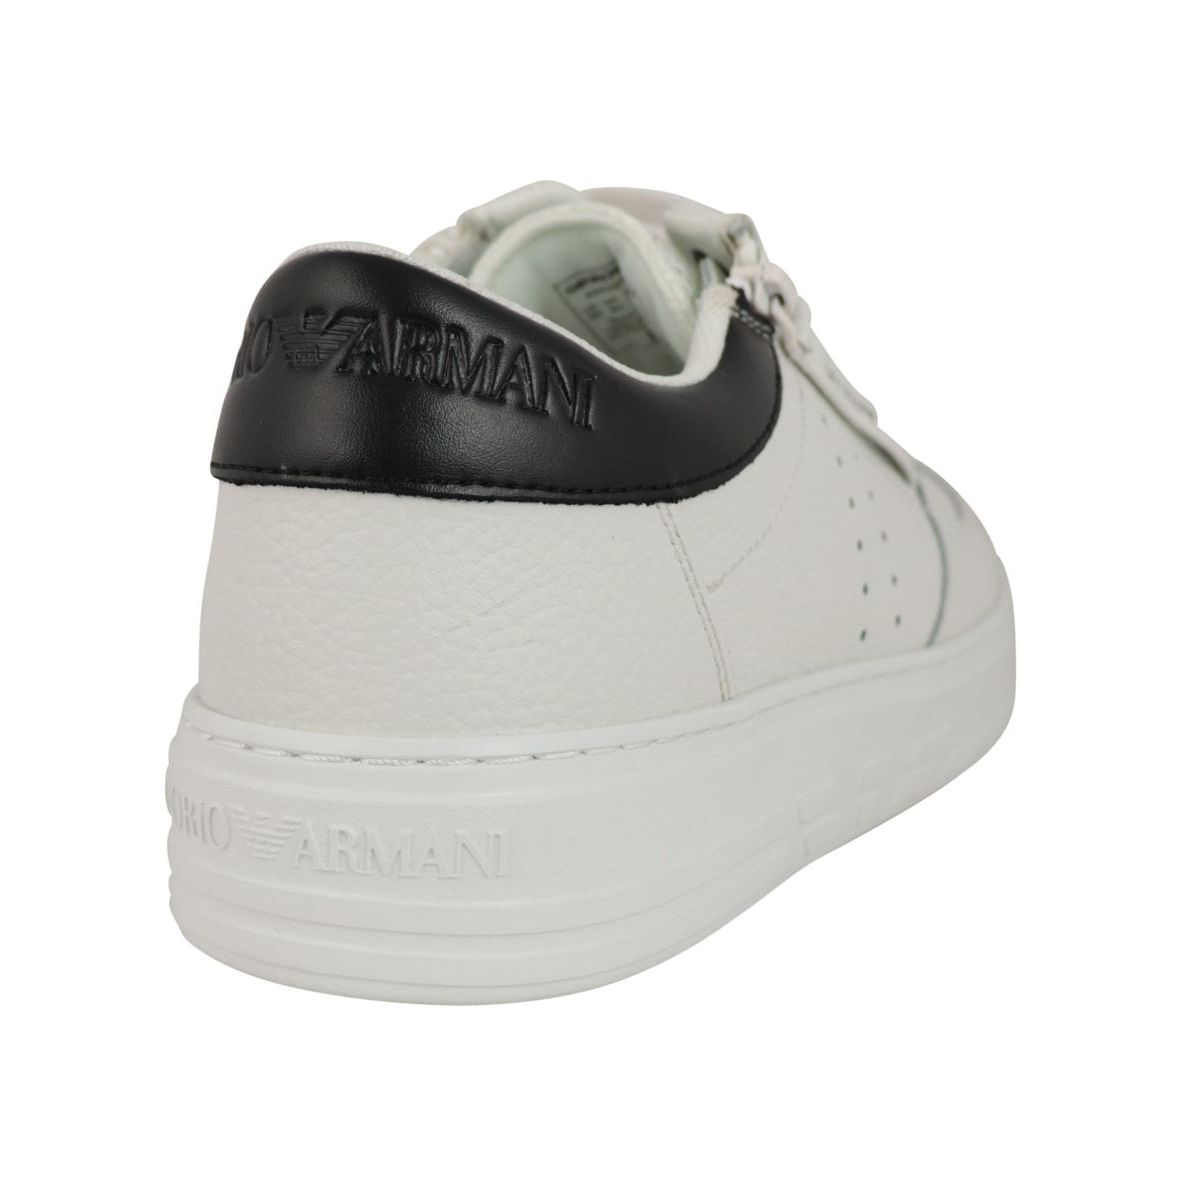 Sneakers with side logo White Emporio Armani